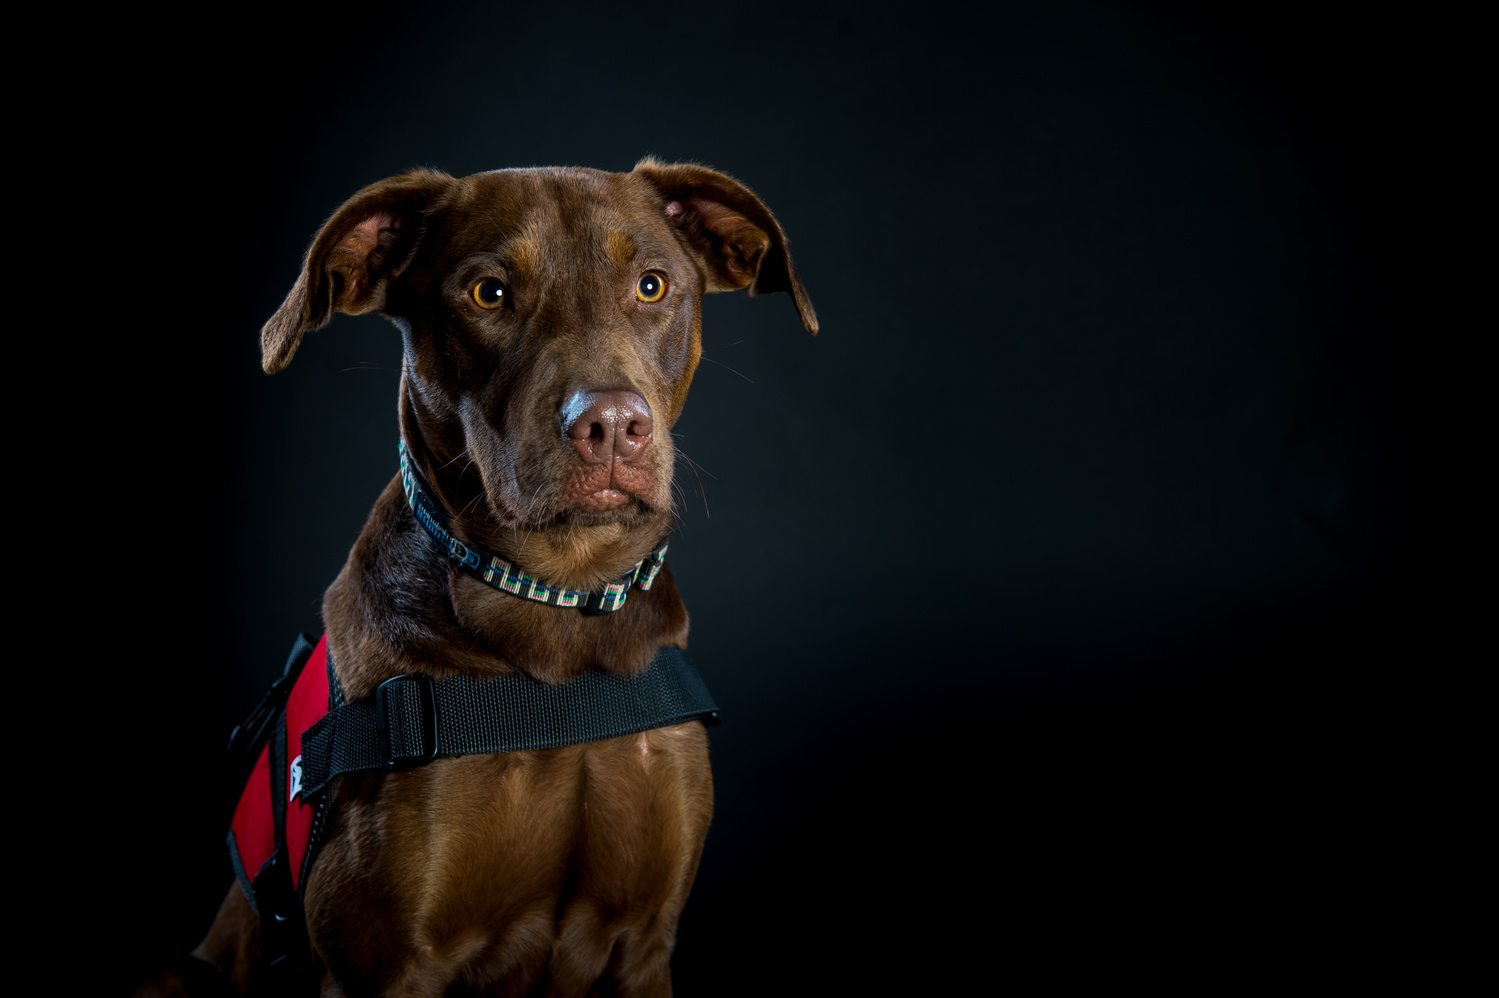 Service Dogs for America by Darren L